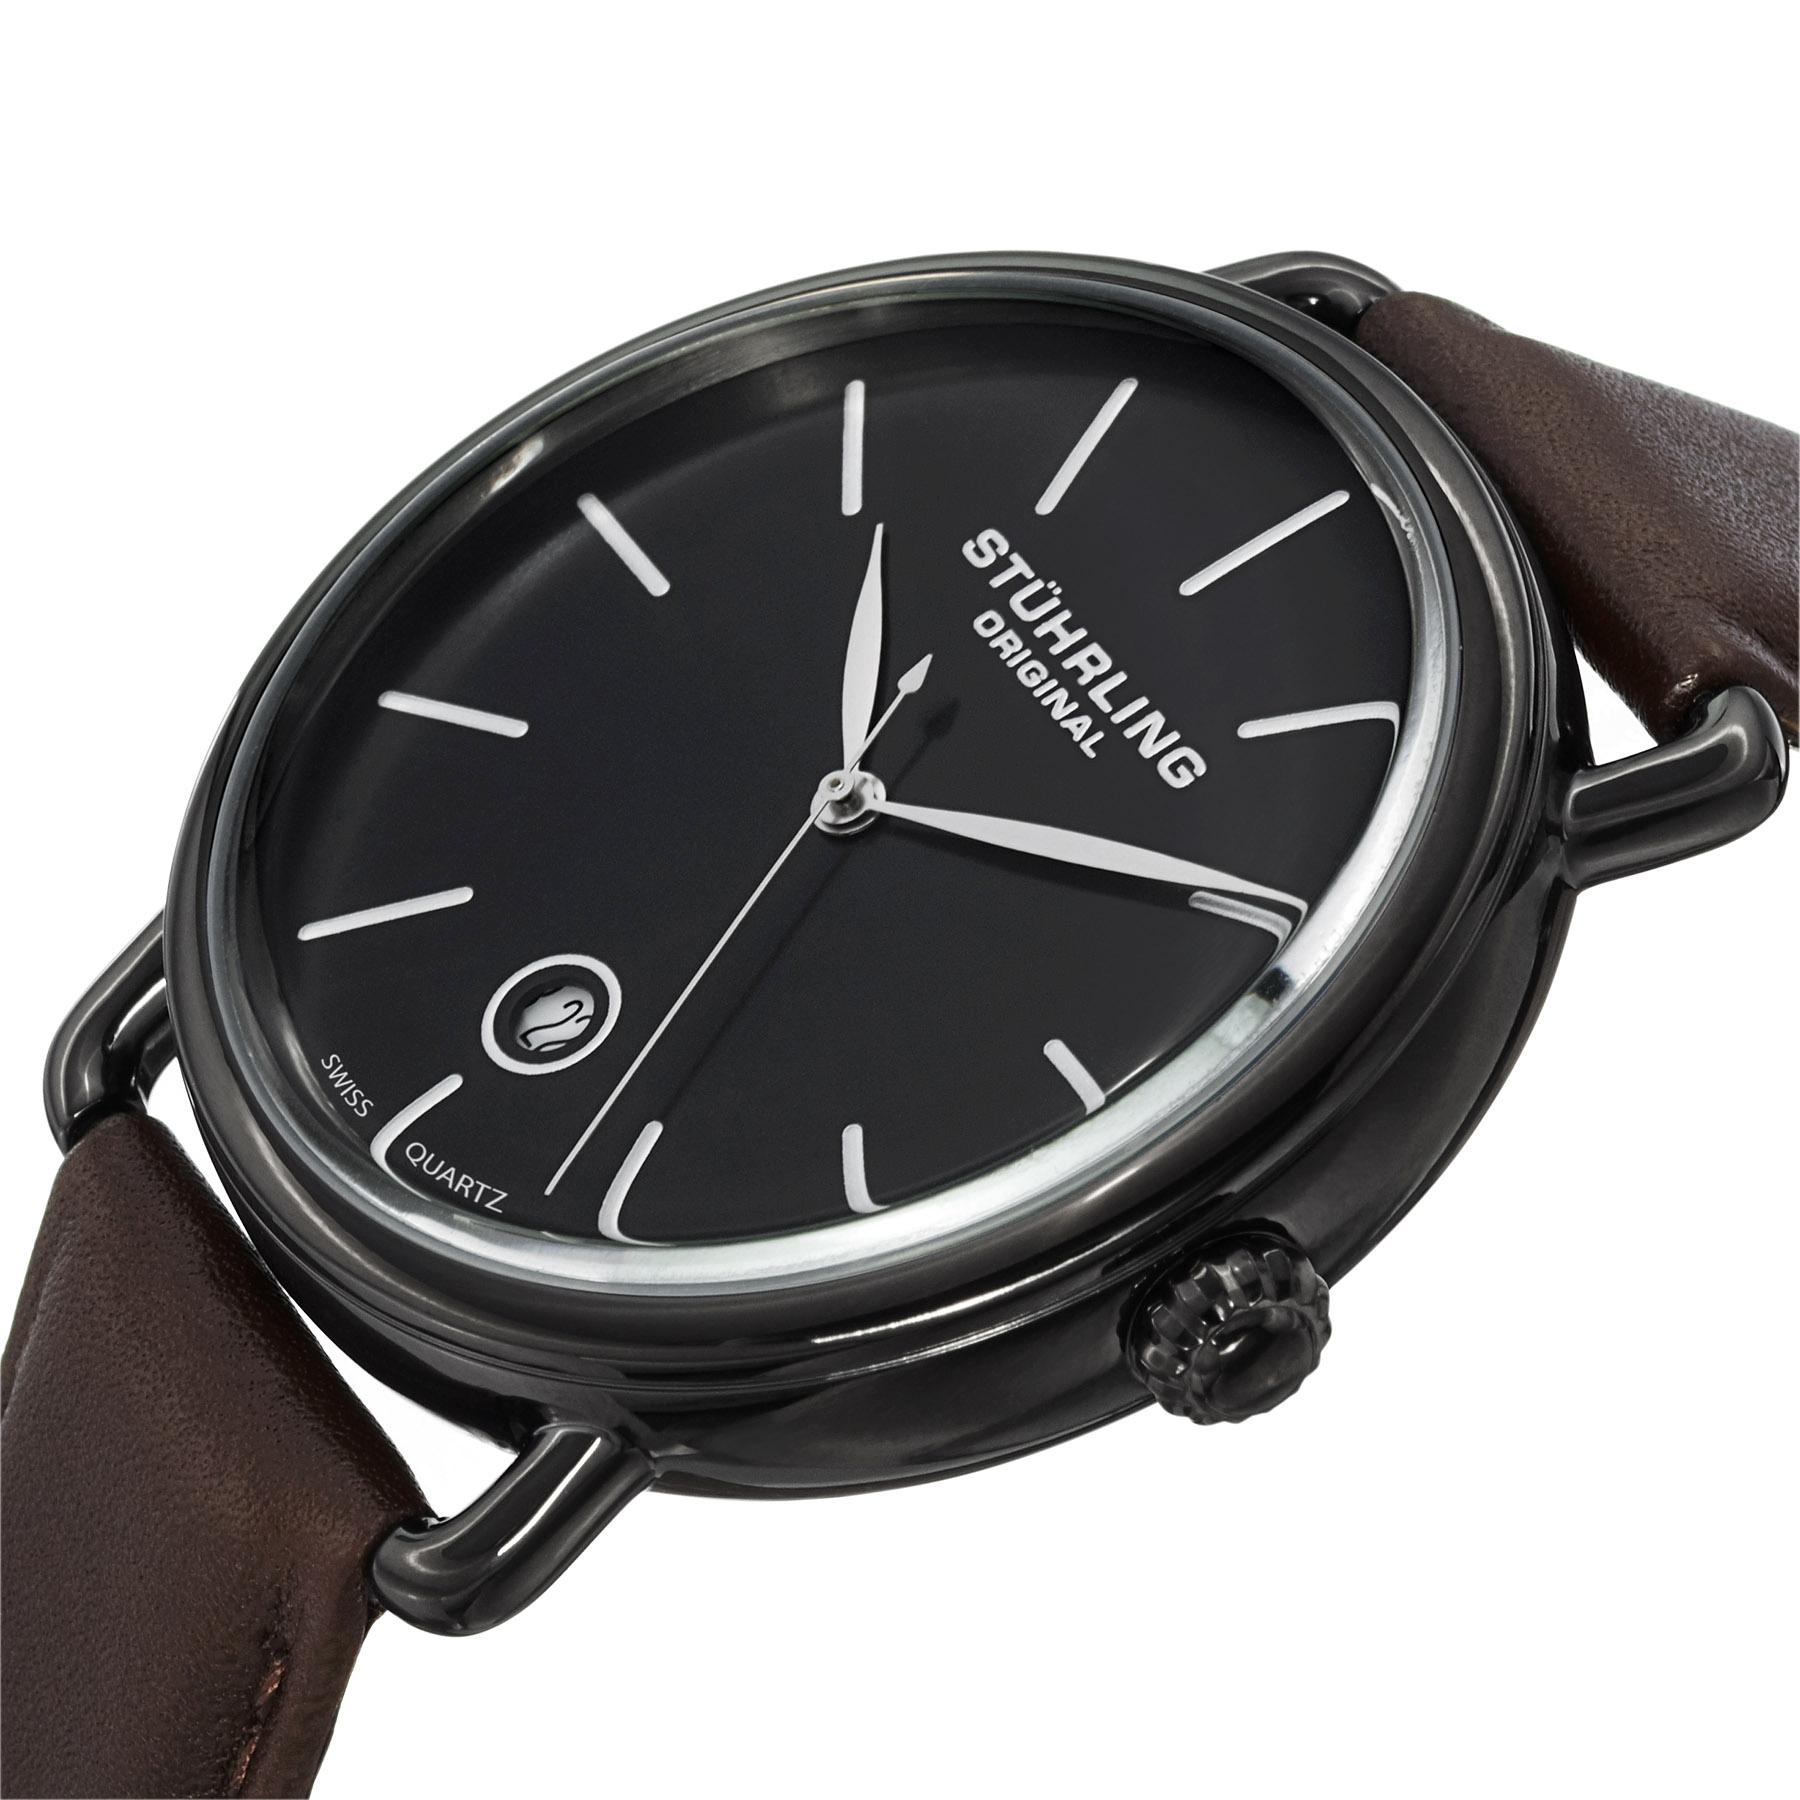 buy stuhrling original classic analog black dial men s watch from the manufacturer